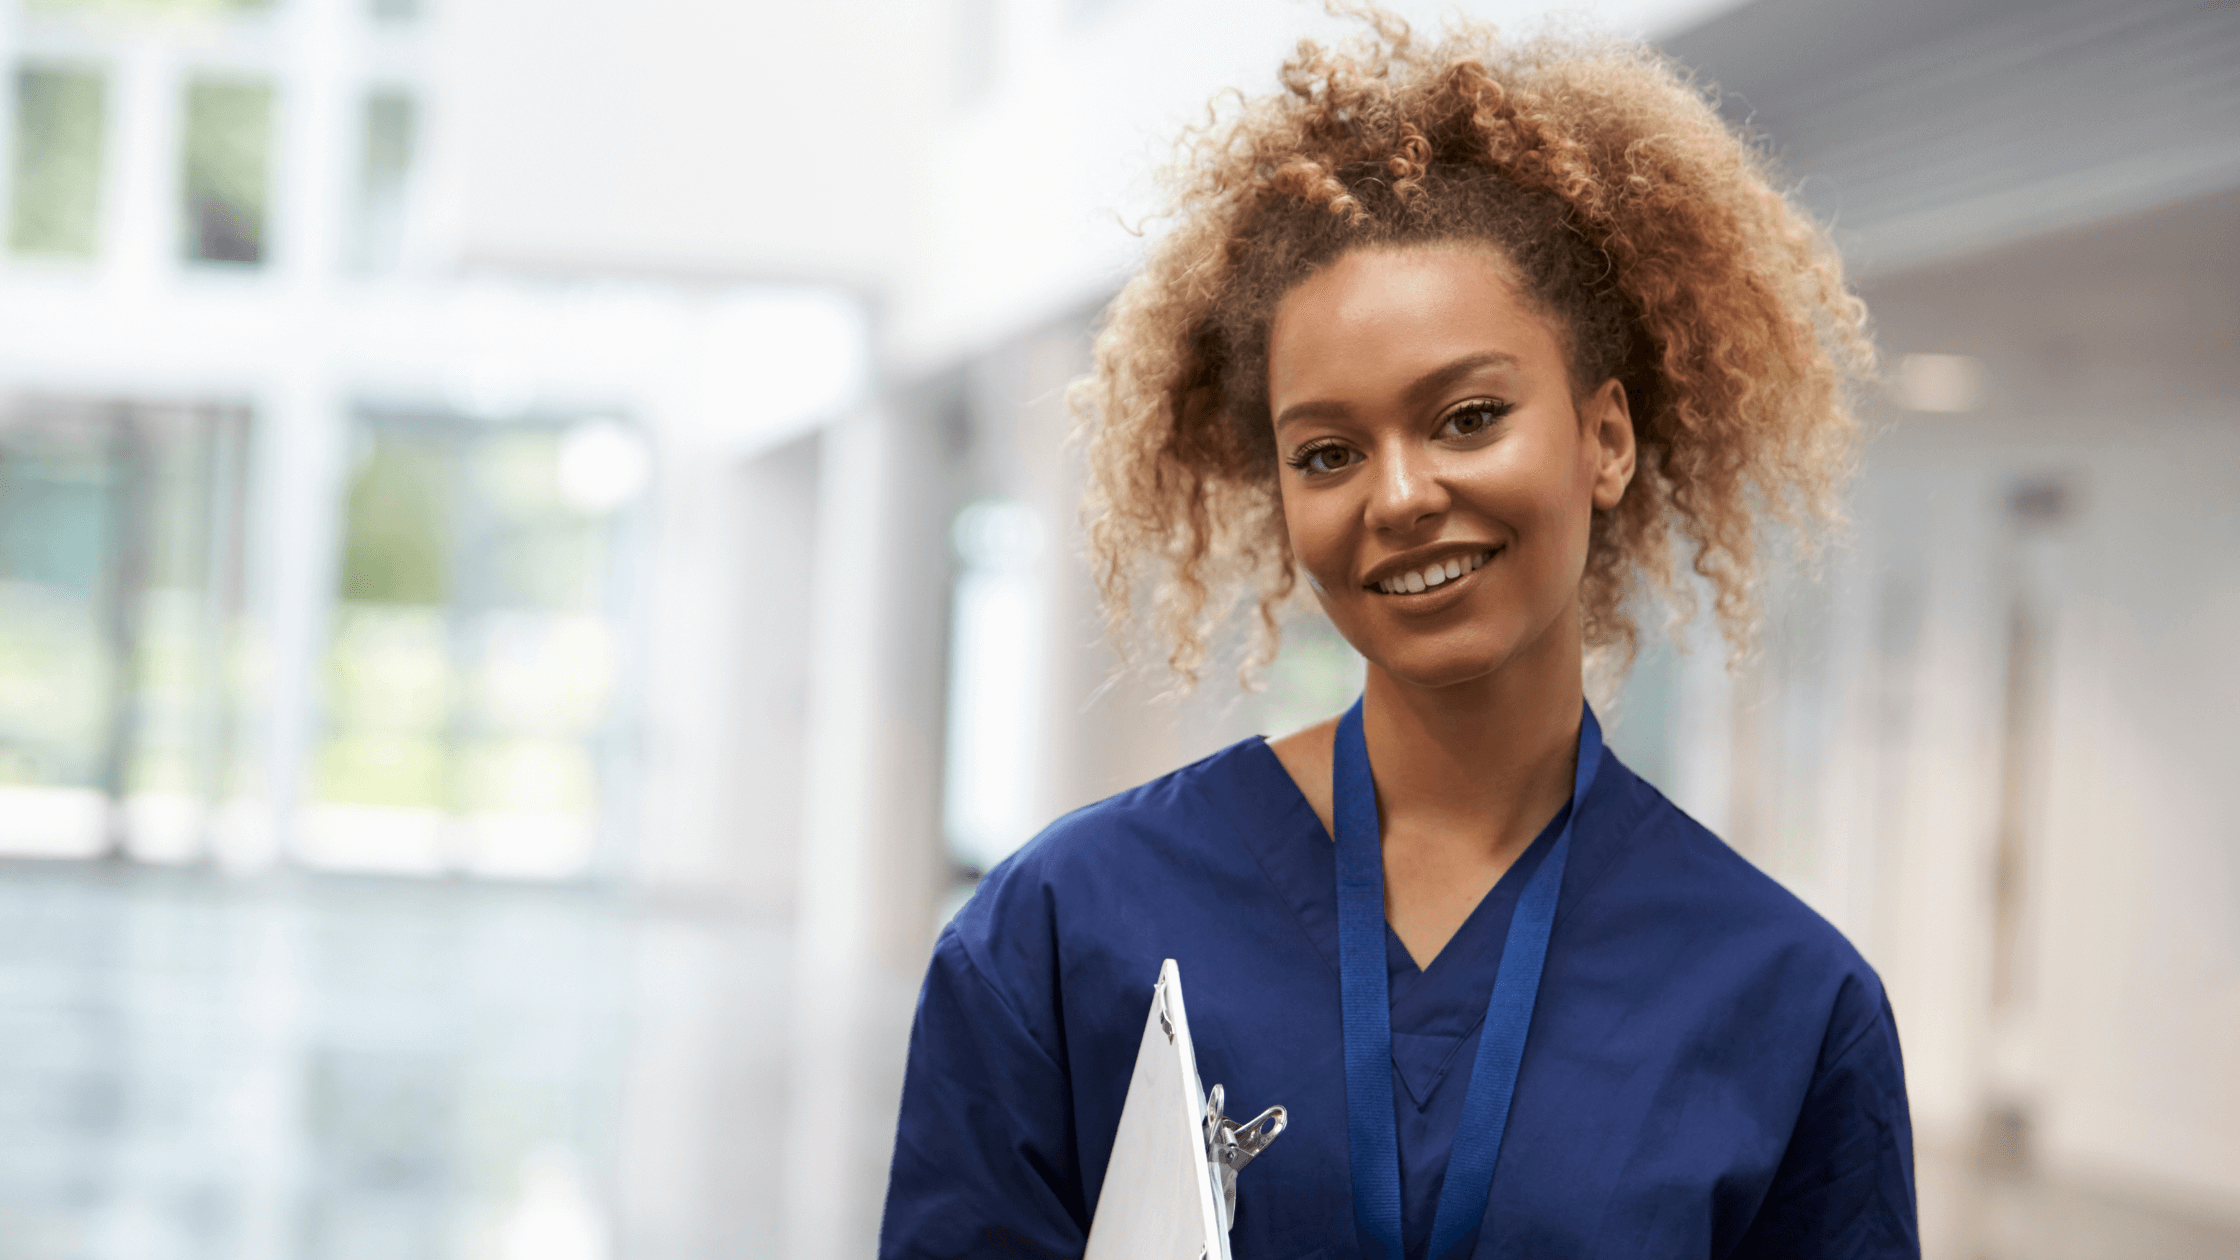 Affinity Health Announces Their Benefits for 2021